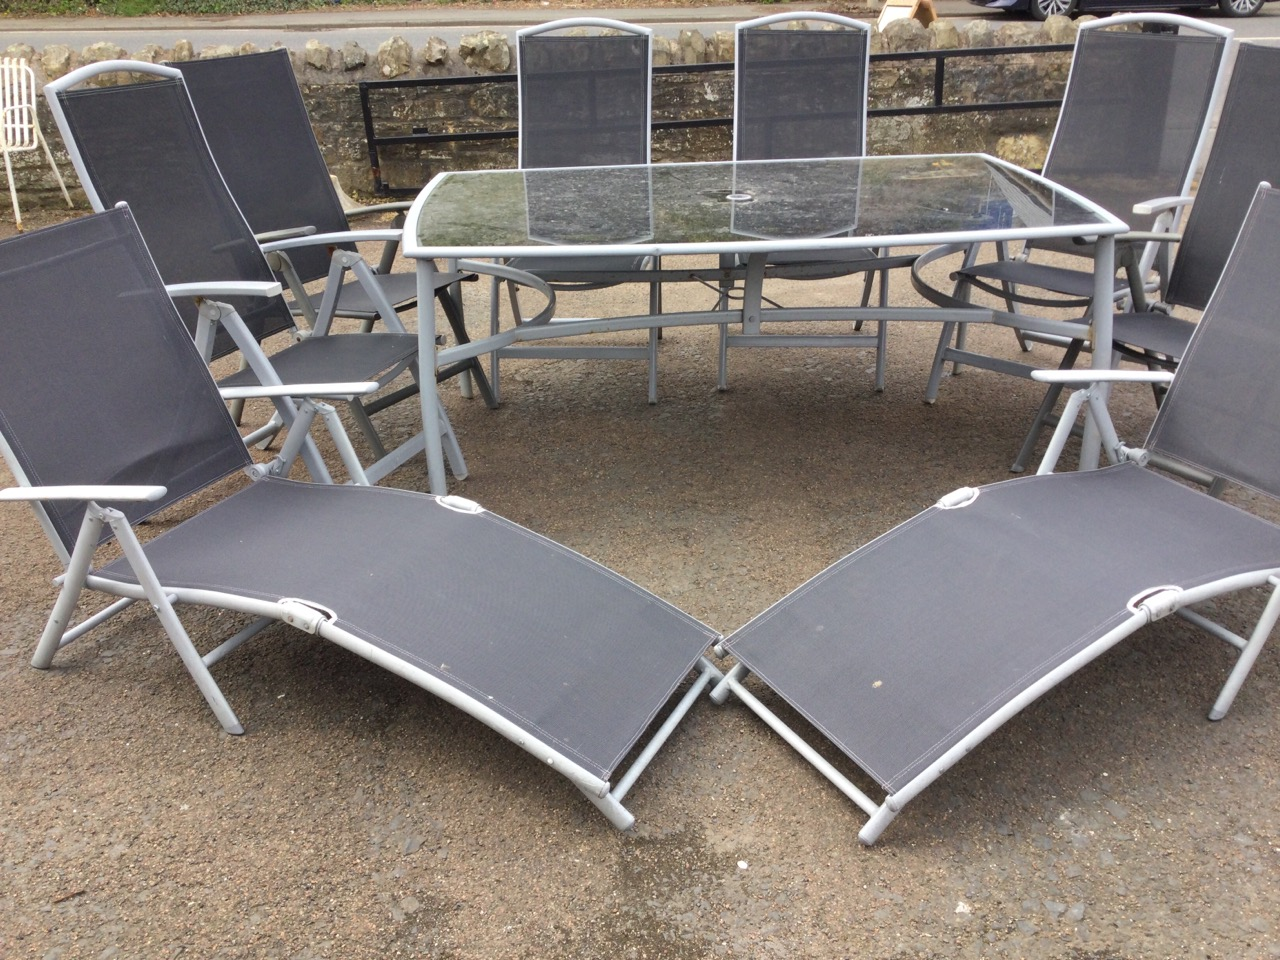 A contemporary rectangular garden table & chair set, the folding chairs with fabric backs & seats - Image 2 of 3